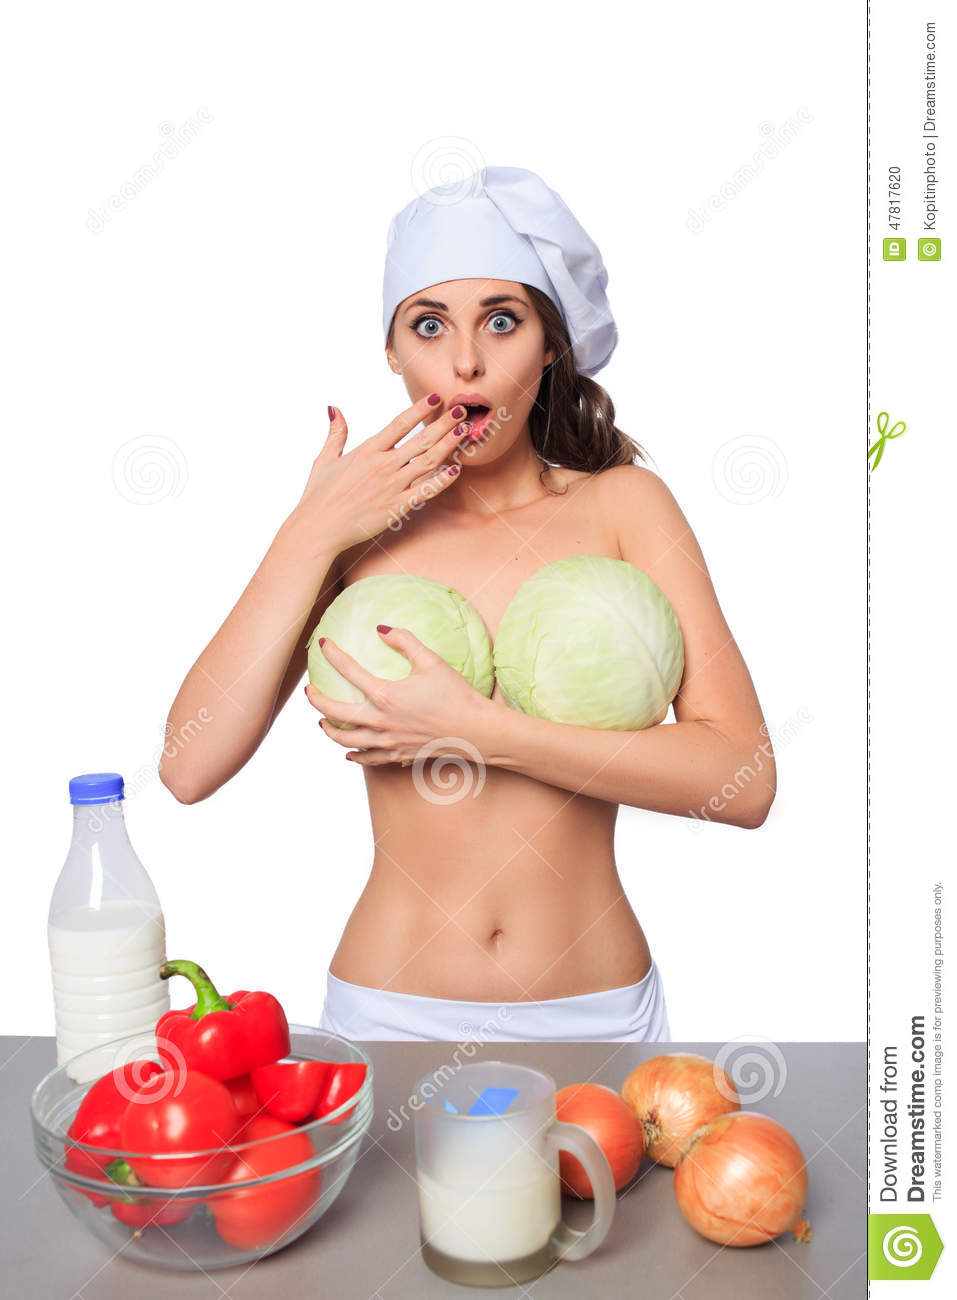 Chef, big tits, cabbage. stock photo. Image of girl ...